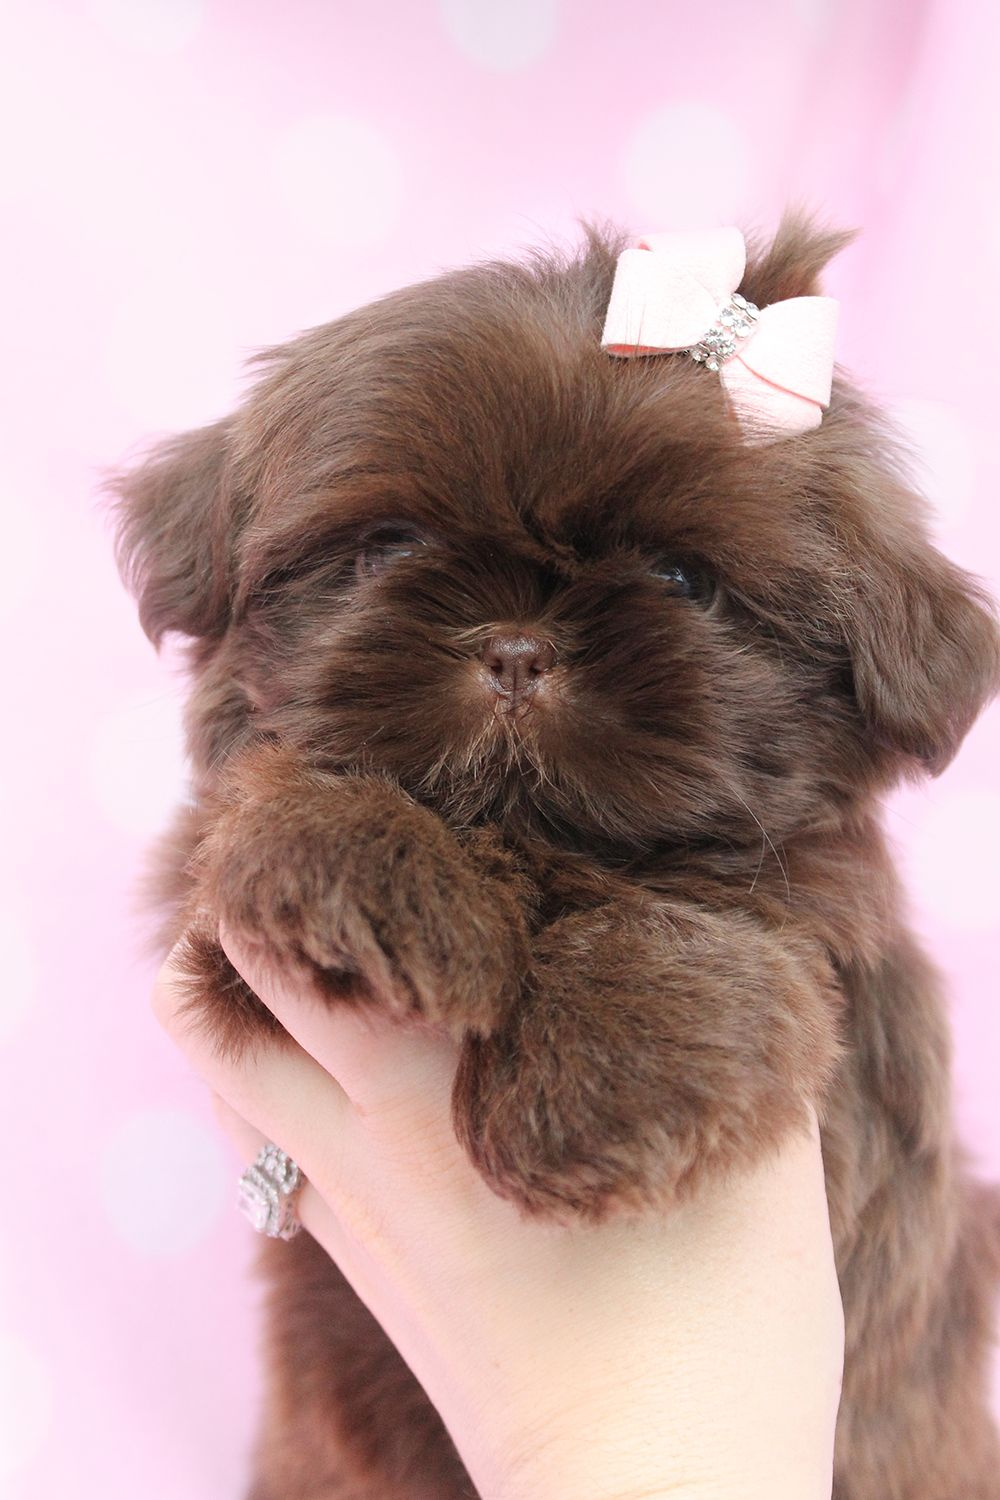 Pin By Stacy Austin On Cute Pet S Shih Tzu Puppies Shitzu Puppies